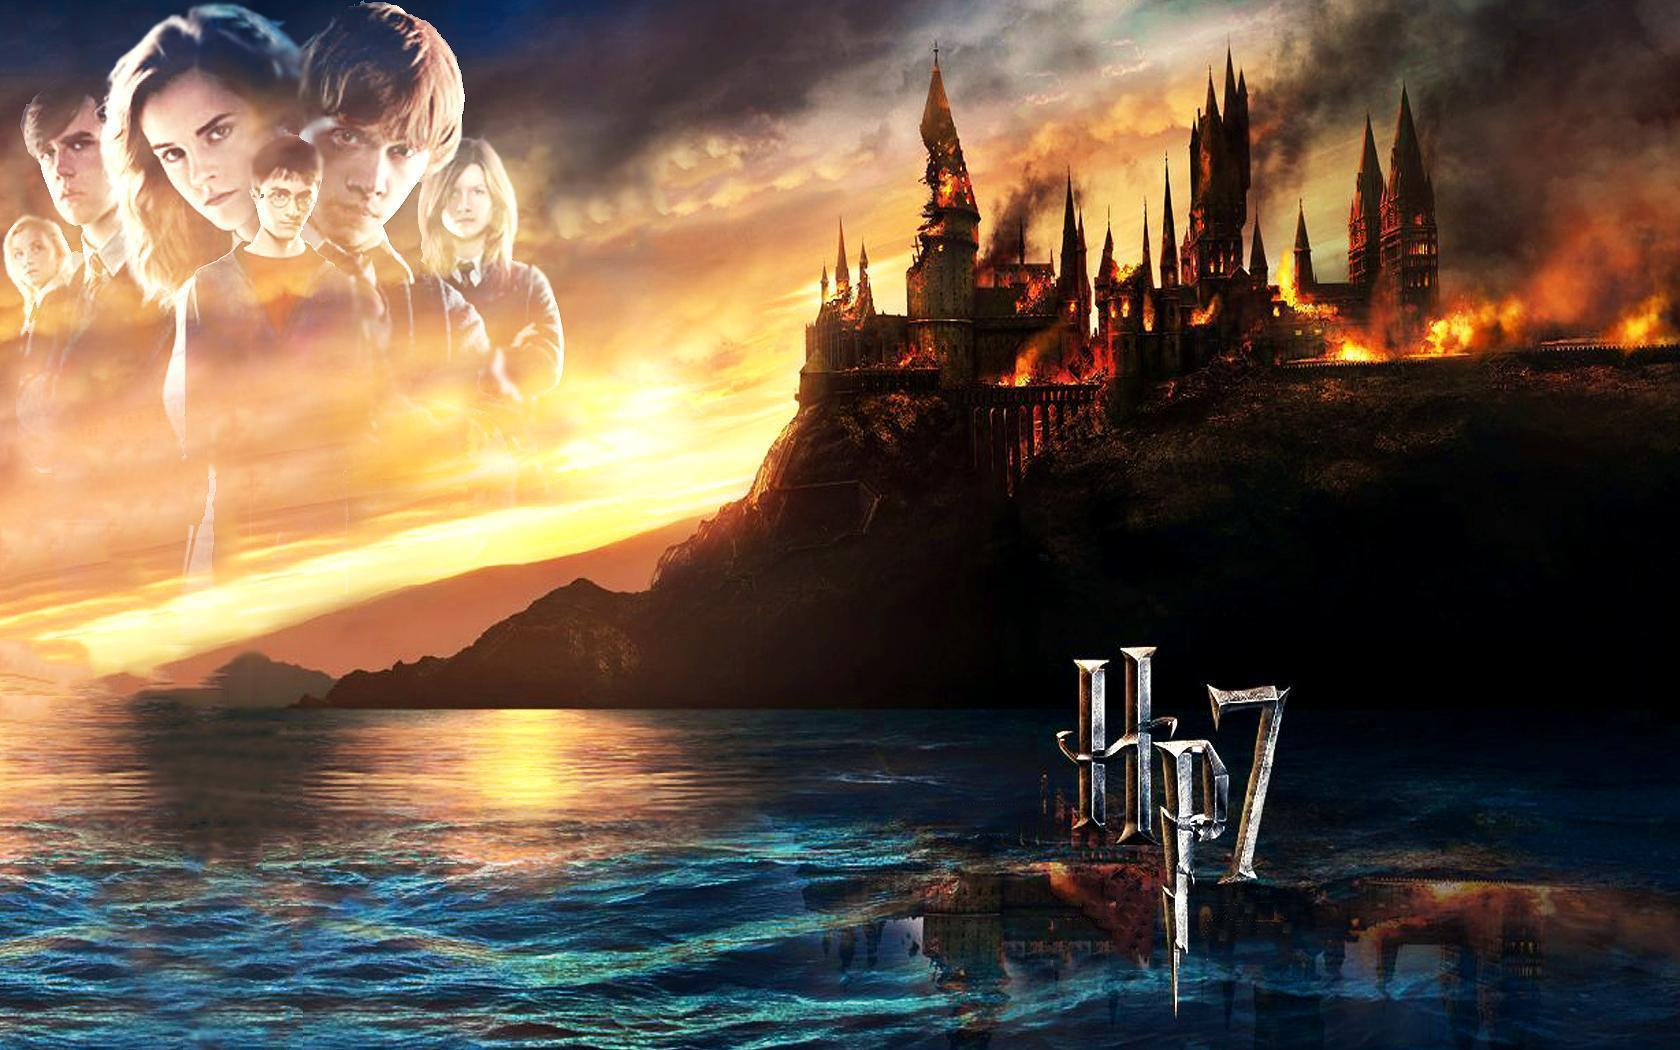 Hd wallpaper harry potter - Harry Potter Movie Id 84811 Wallpho Com